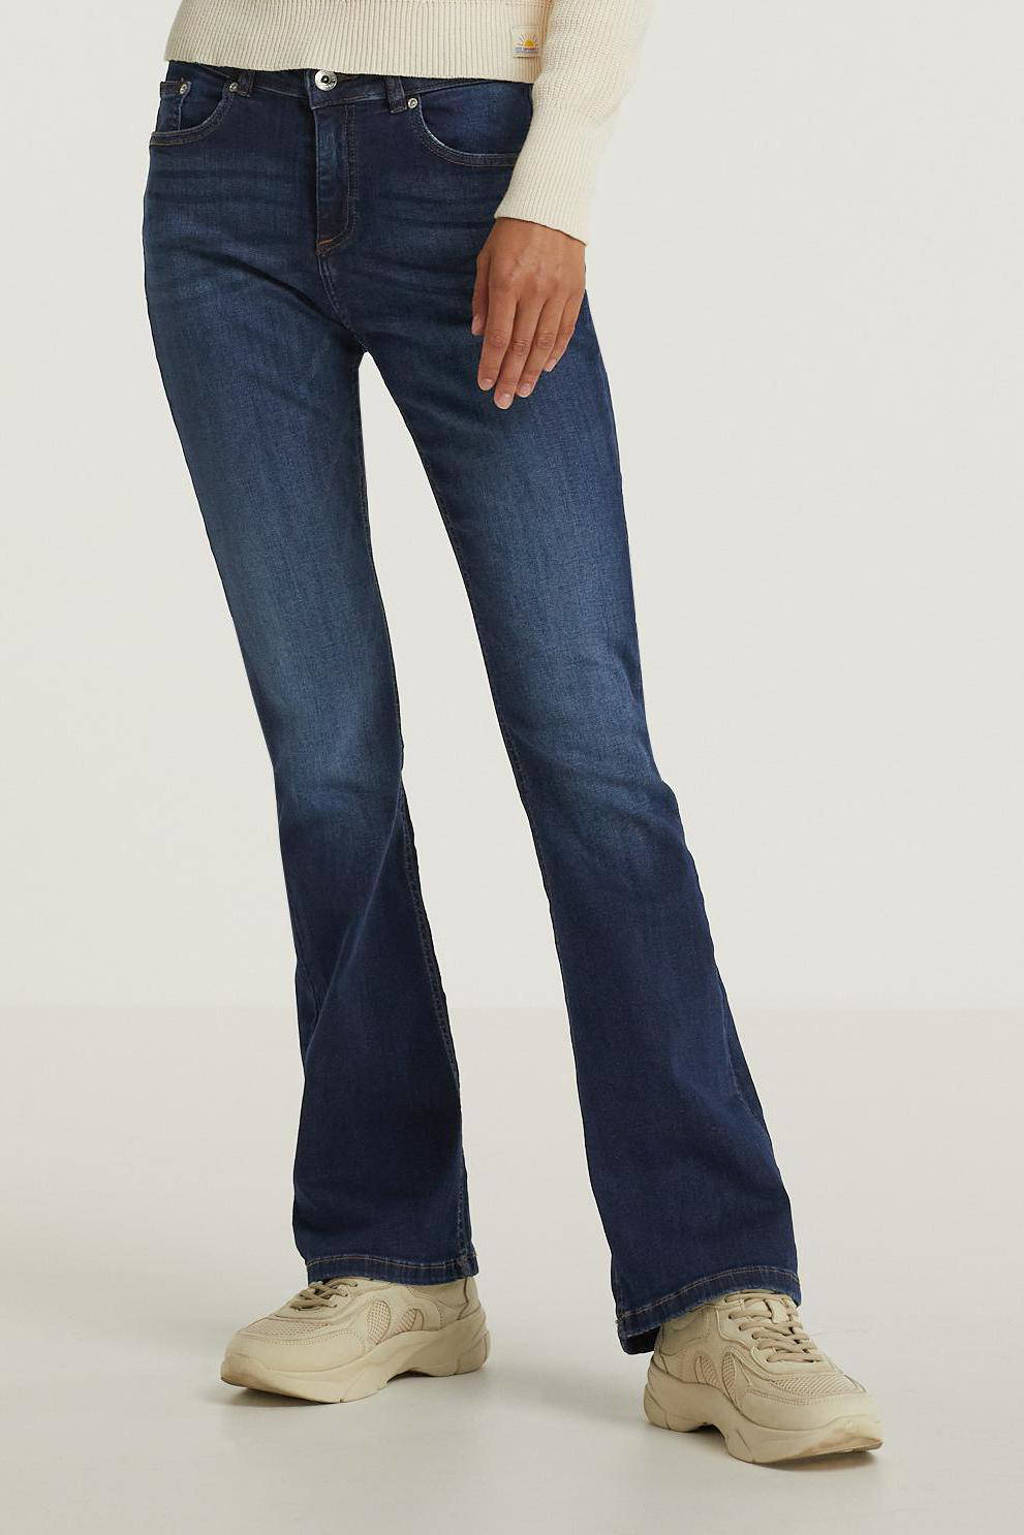 B.Young flared jeans BYLOLA donkerblauw, Donkerblauw